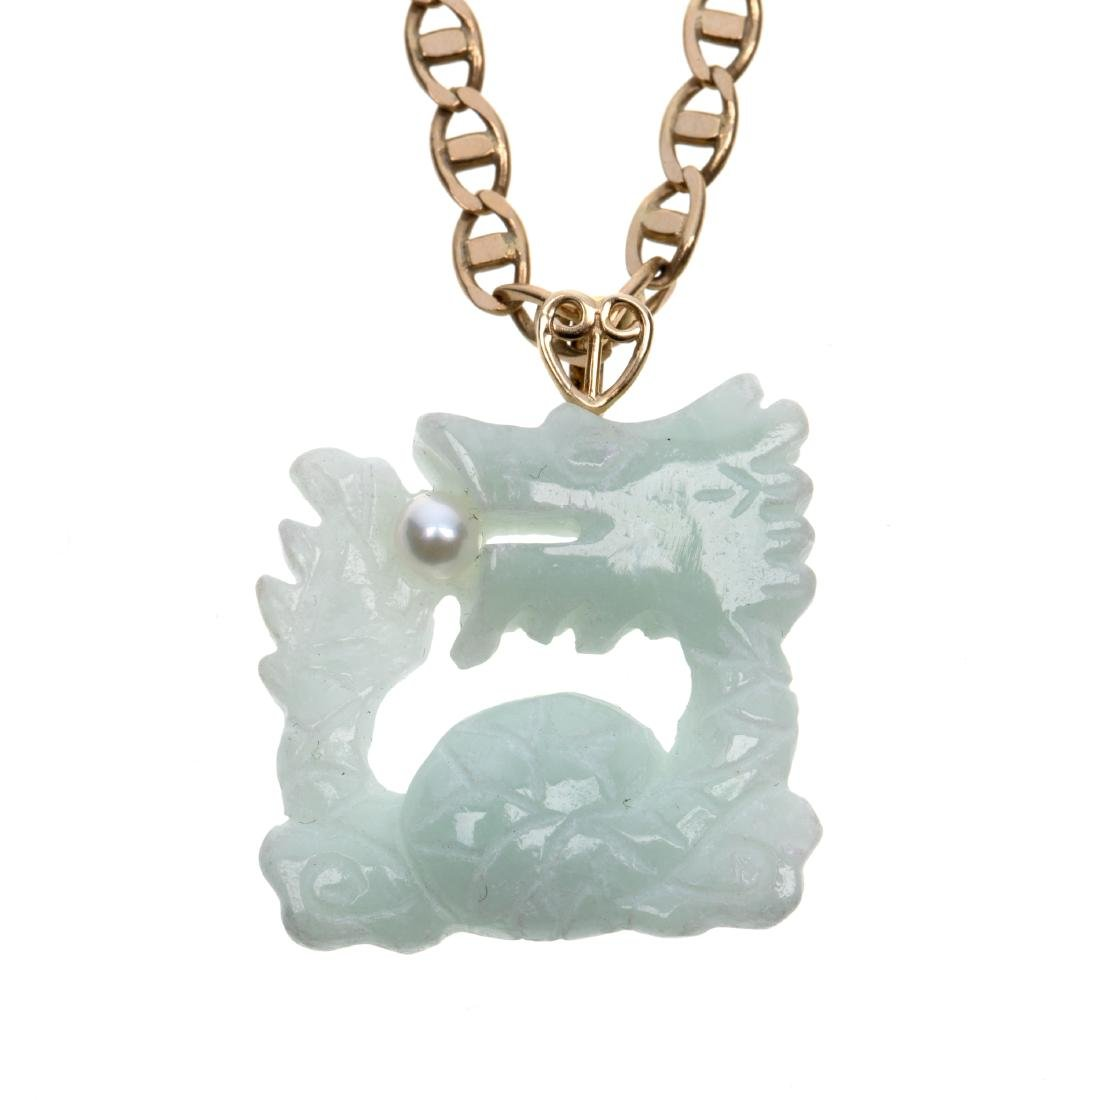 A jade, cultured pearl, 14k yellow gold necklace